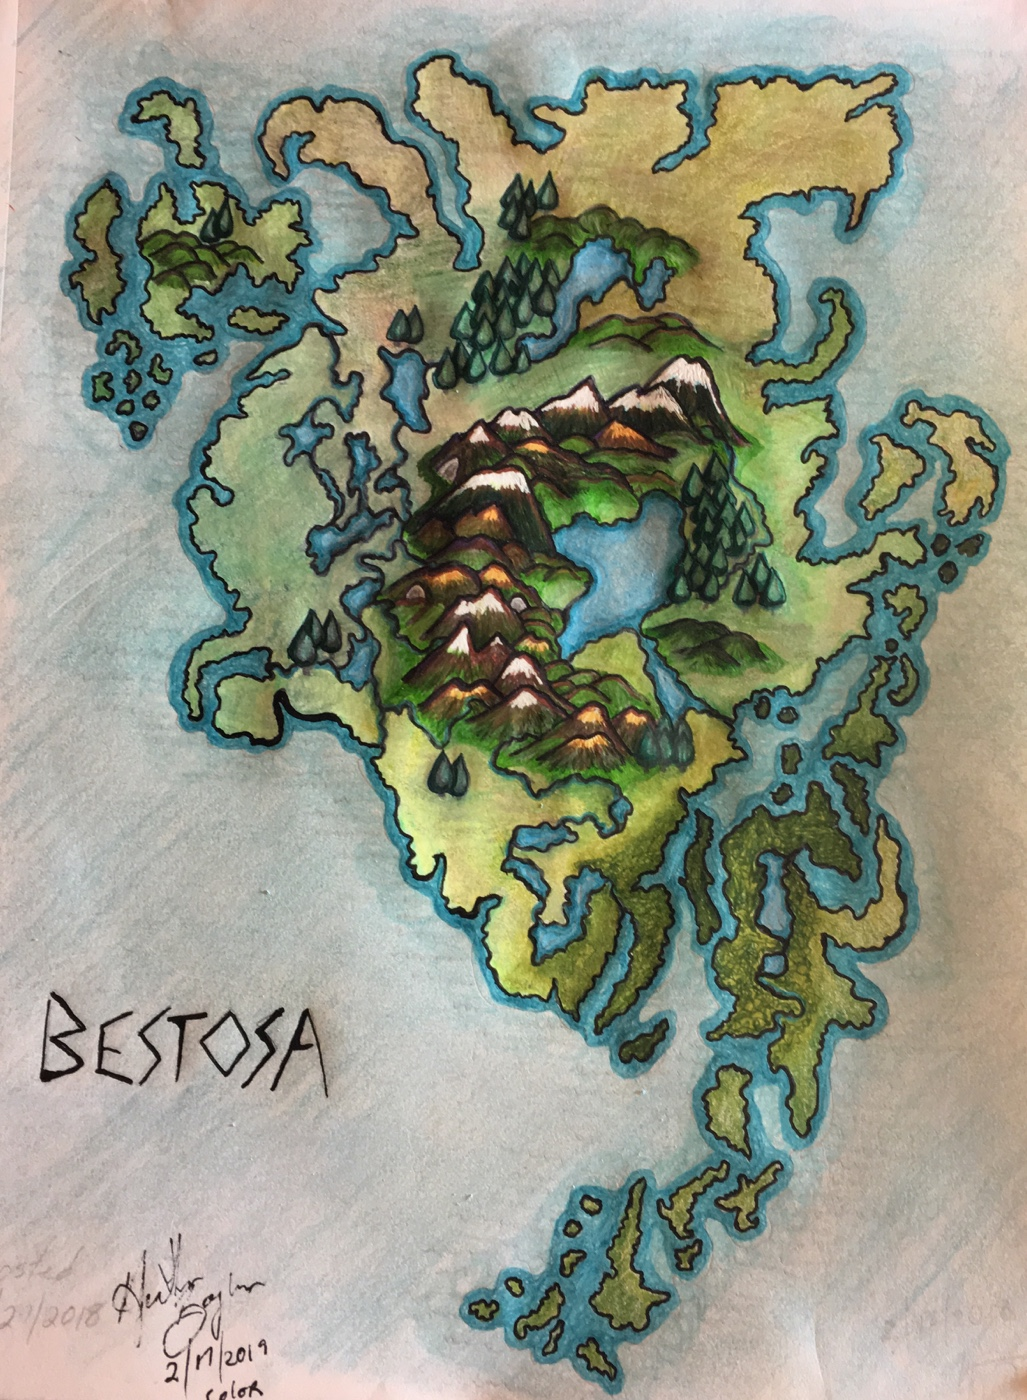 Fantasy map of Bestosa (original color)